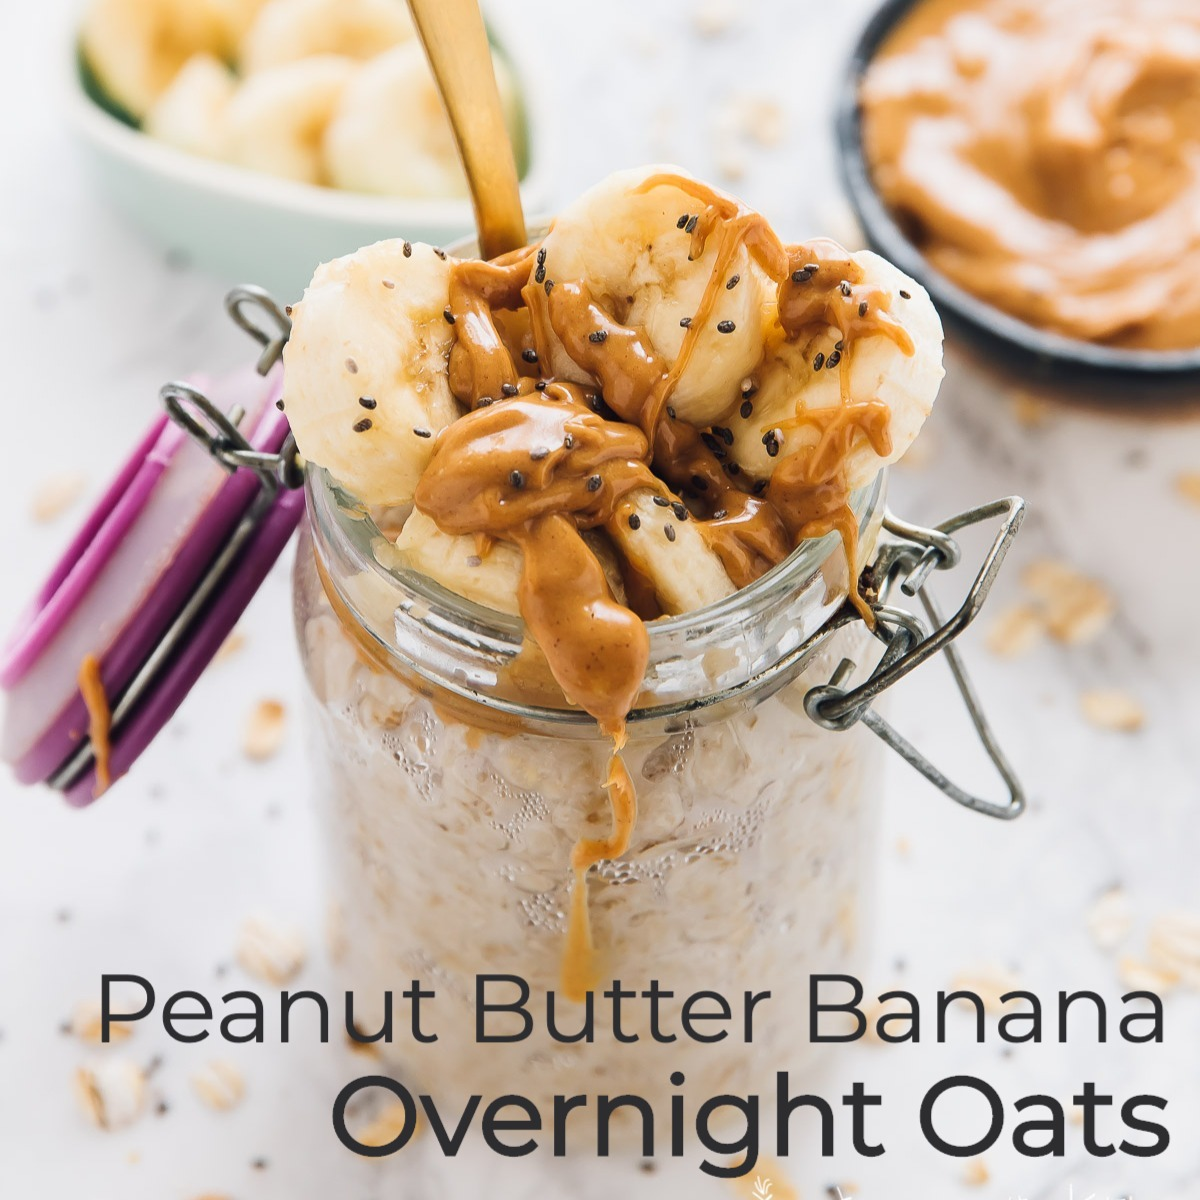 PB Banana Overnight Oats